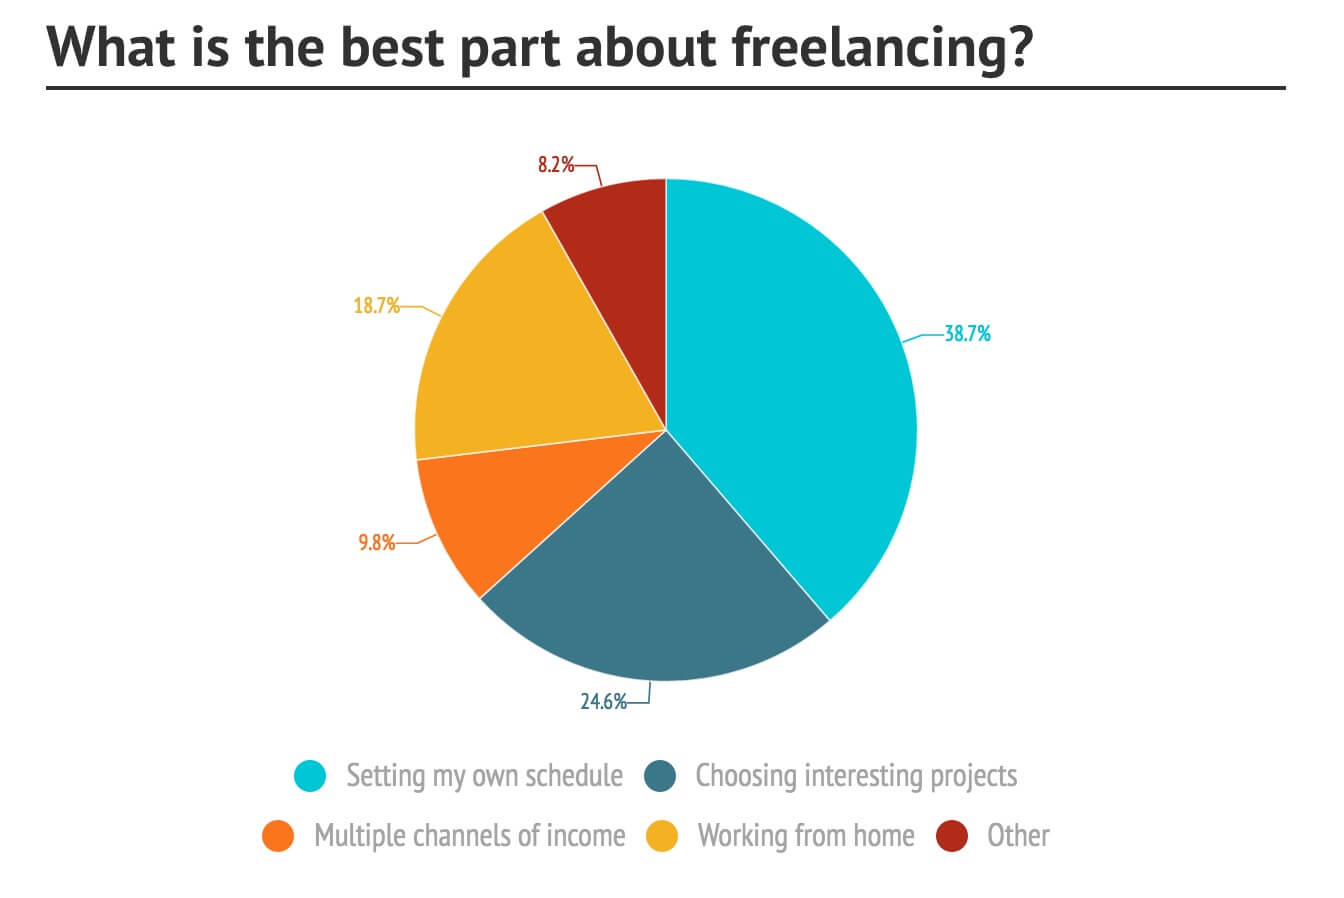 what is the best part about freelancing